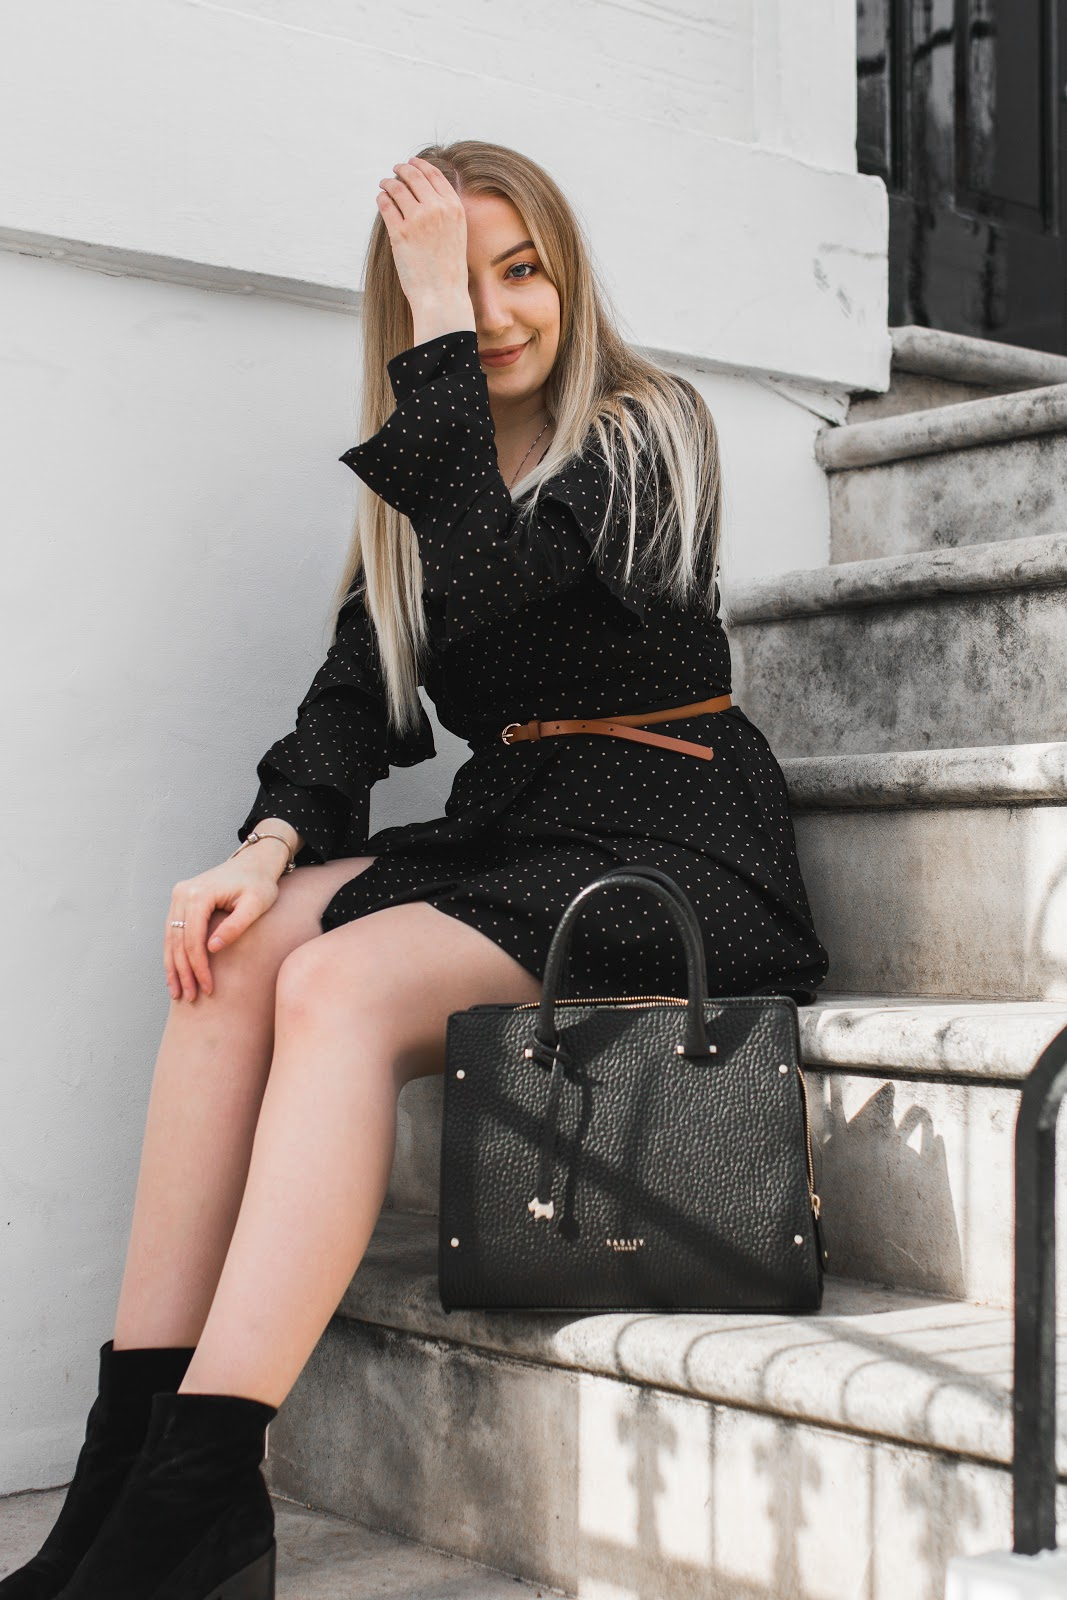 FASHION BLOGGING FOR THE CAMERA SHY | MY 5 TOP TIPS!